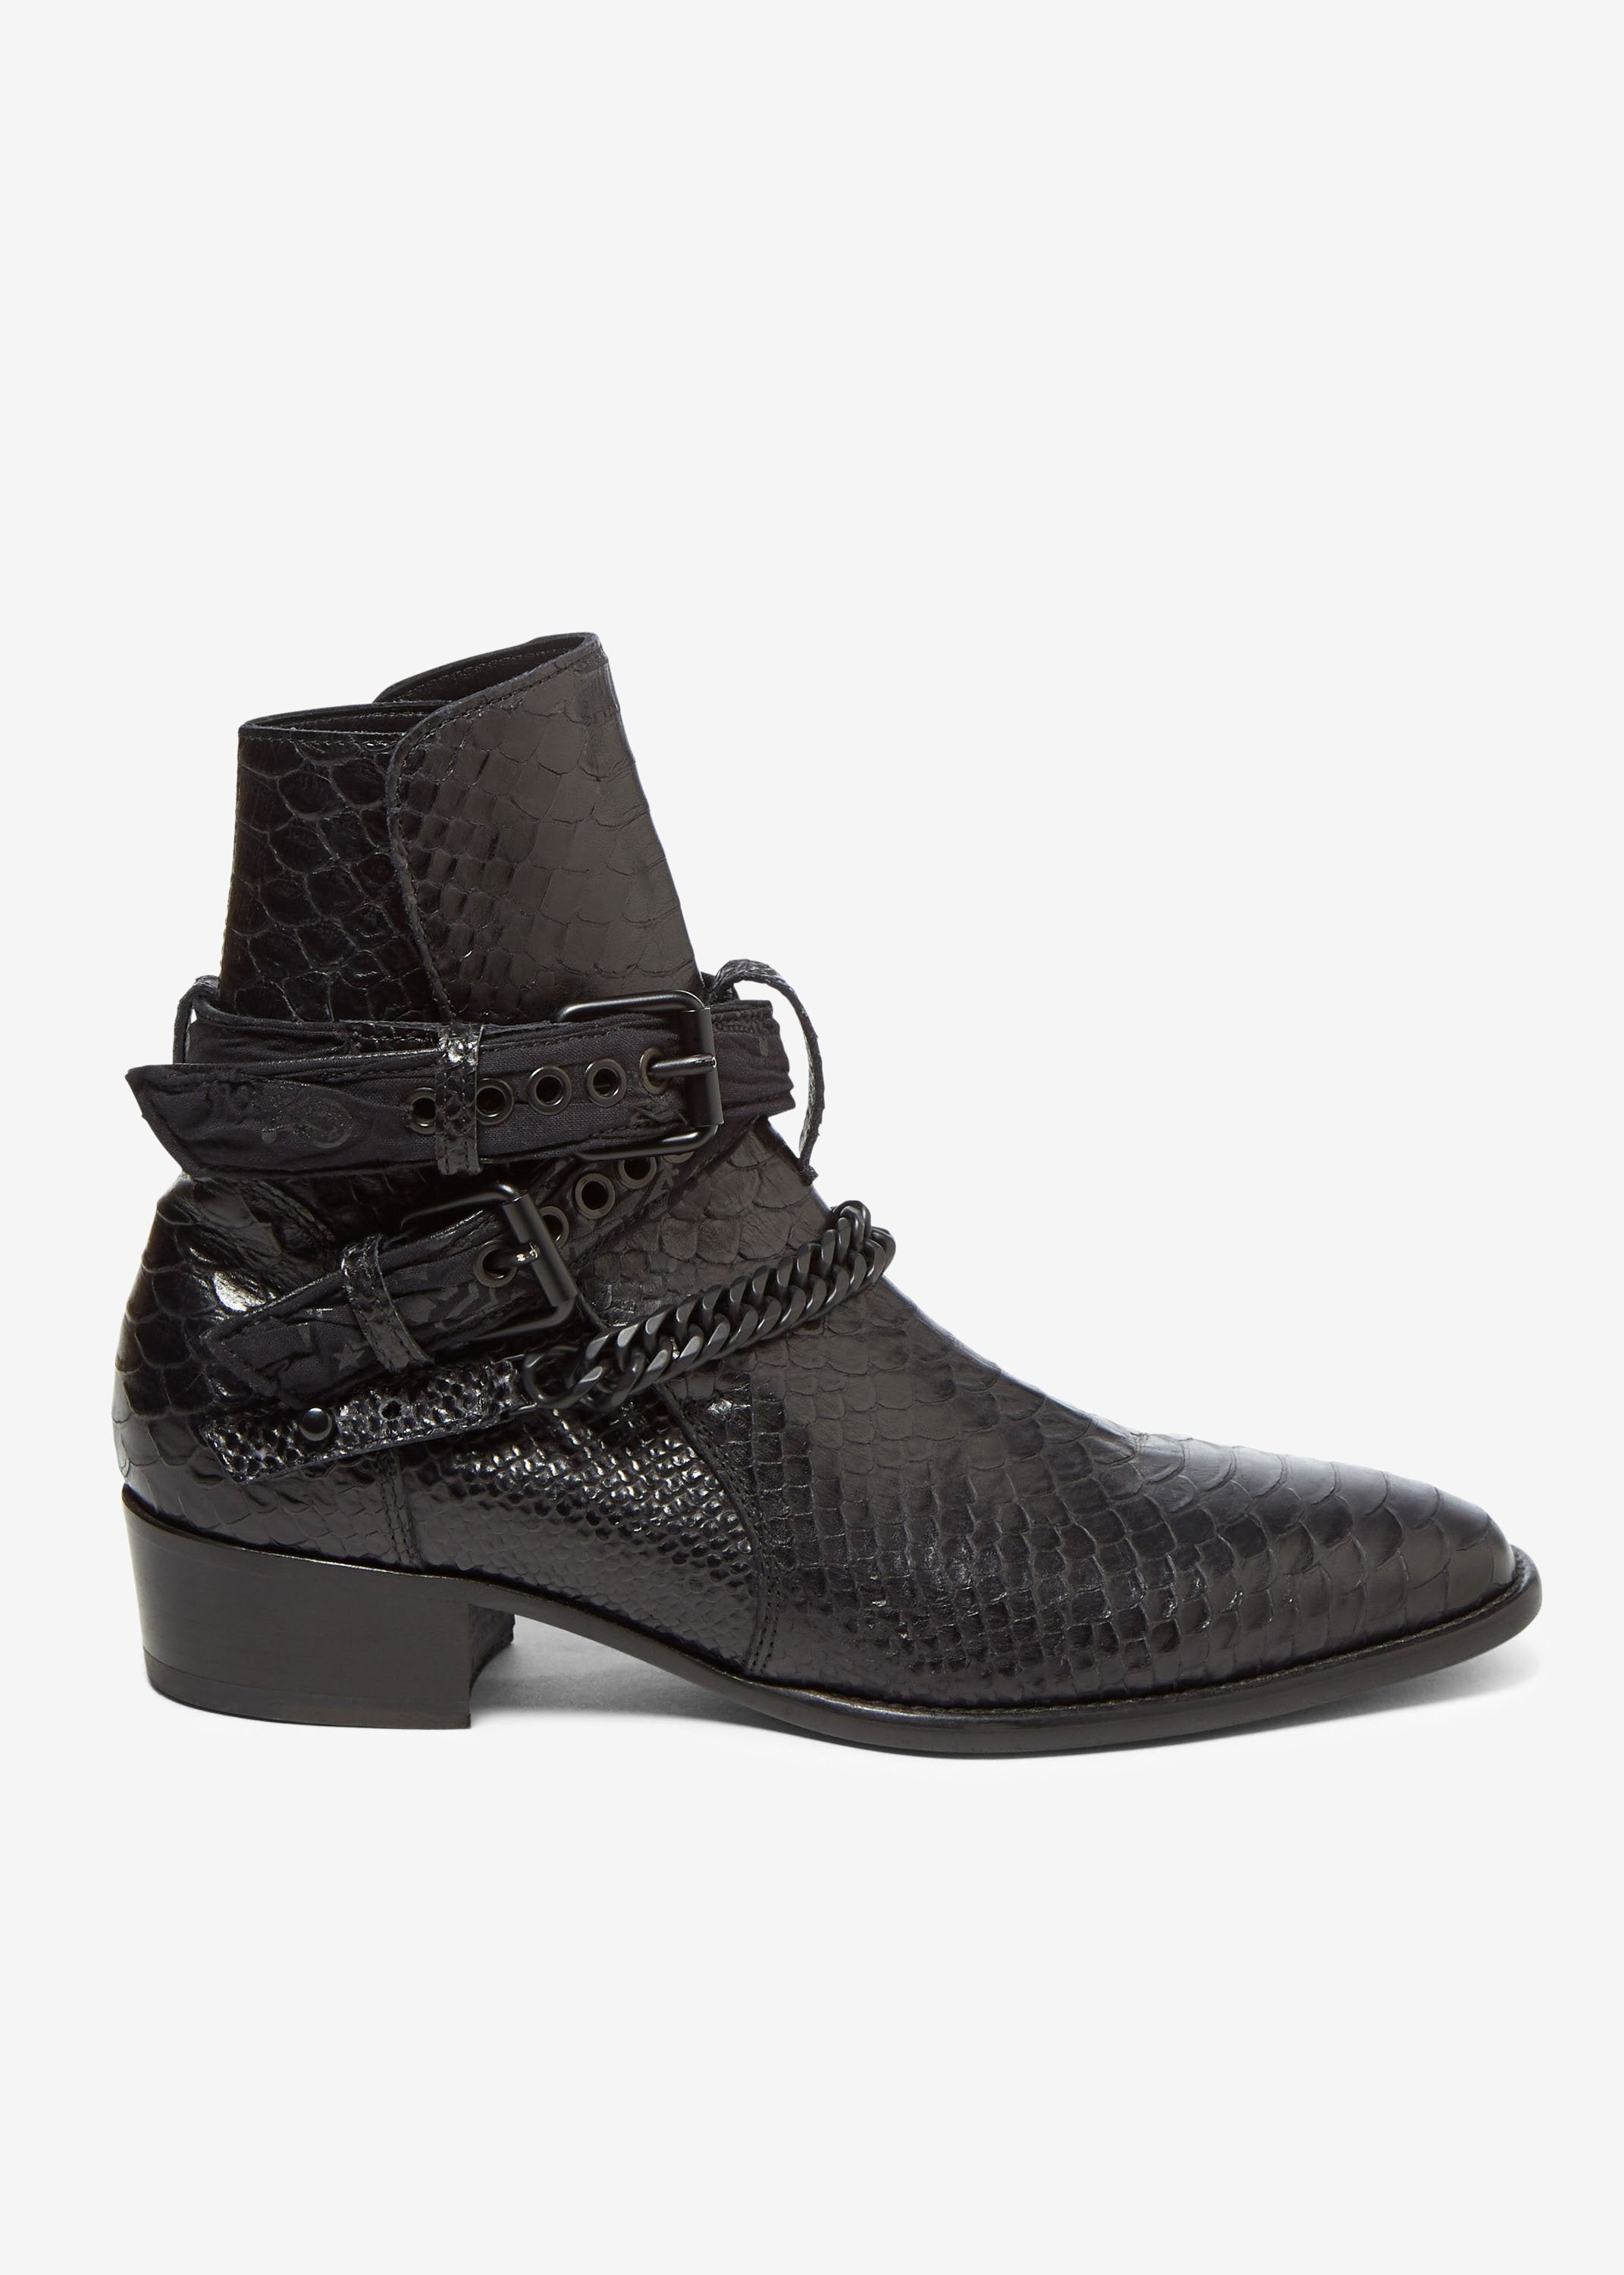 buckle-chain-boot-black-black-image-1